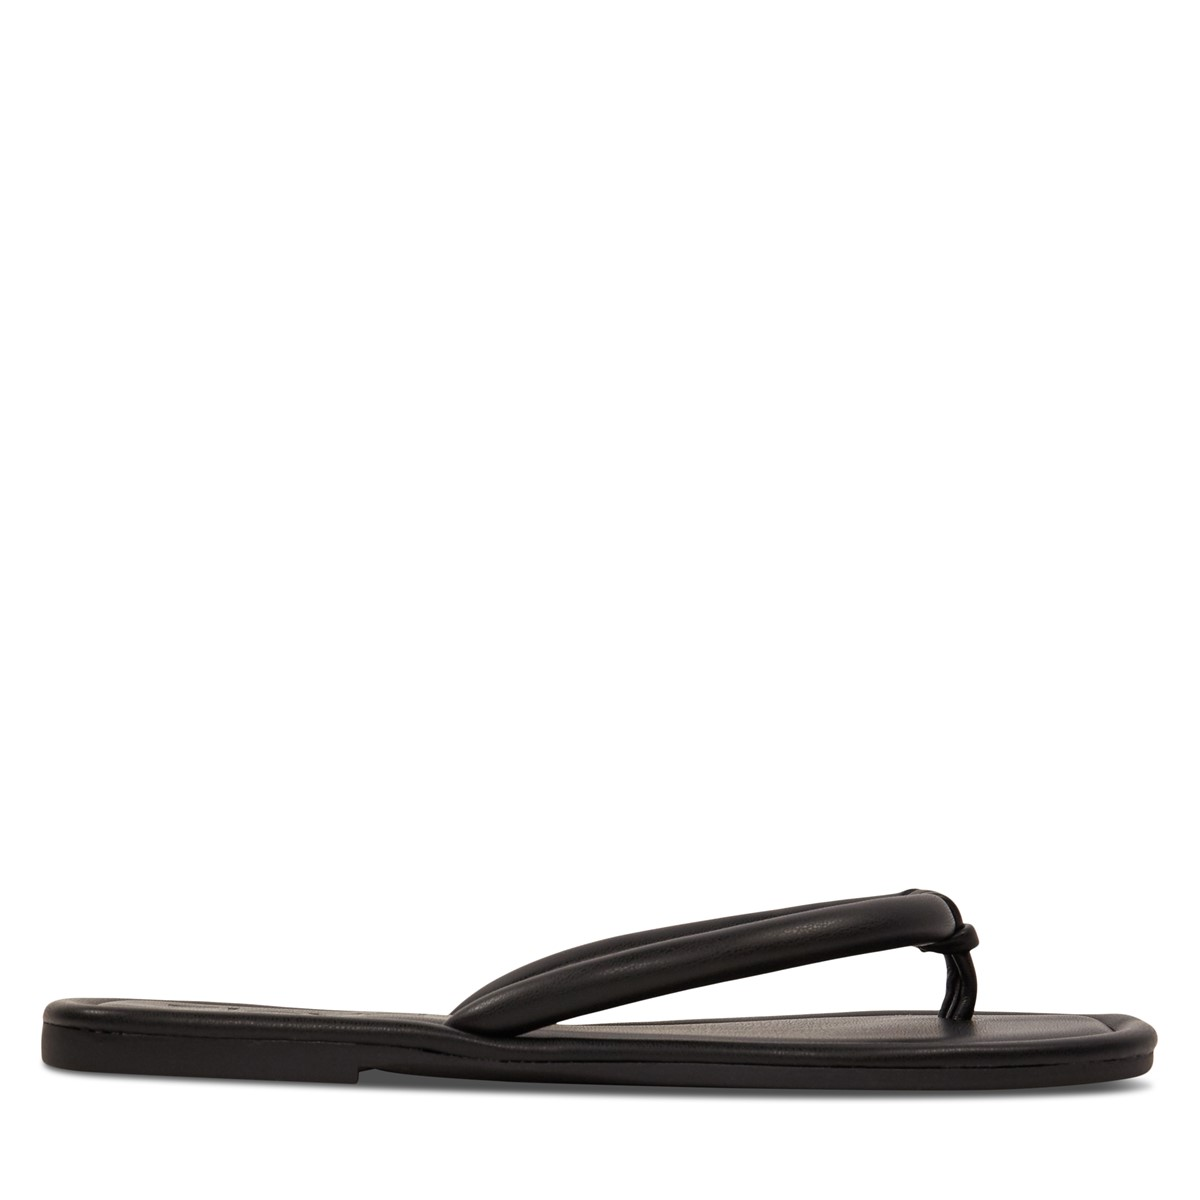 Women's Claire Thong Sandals in Black